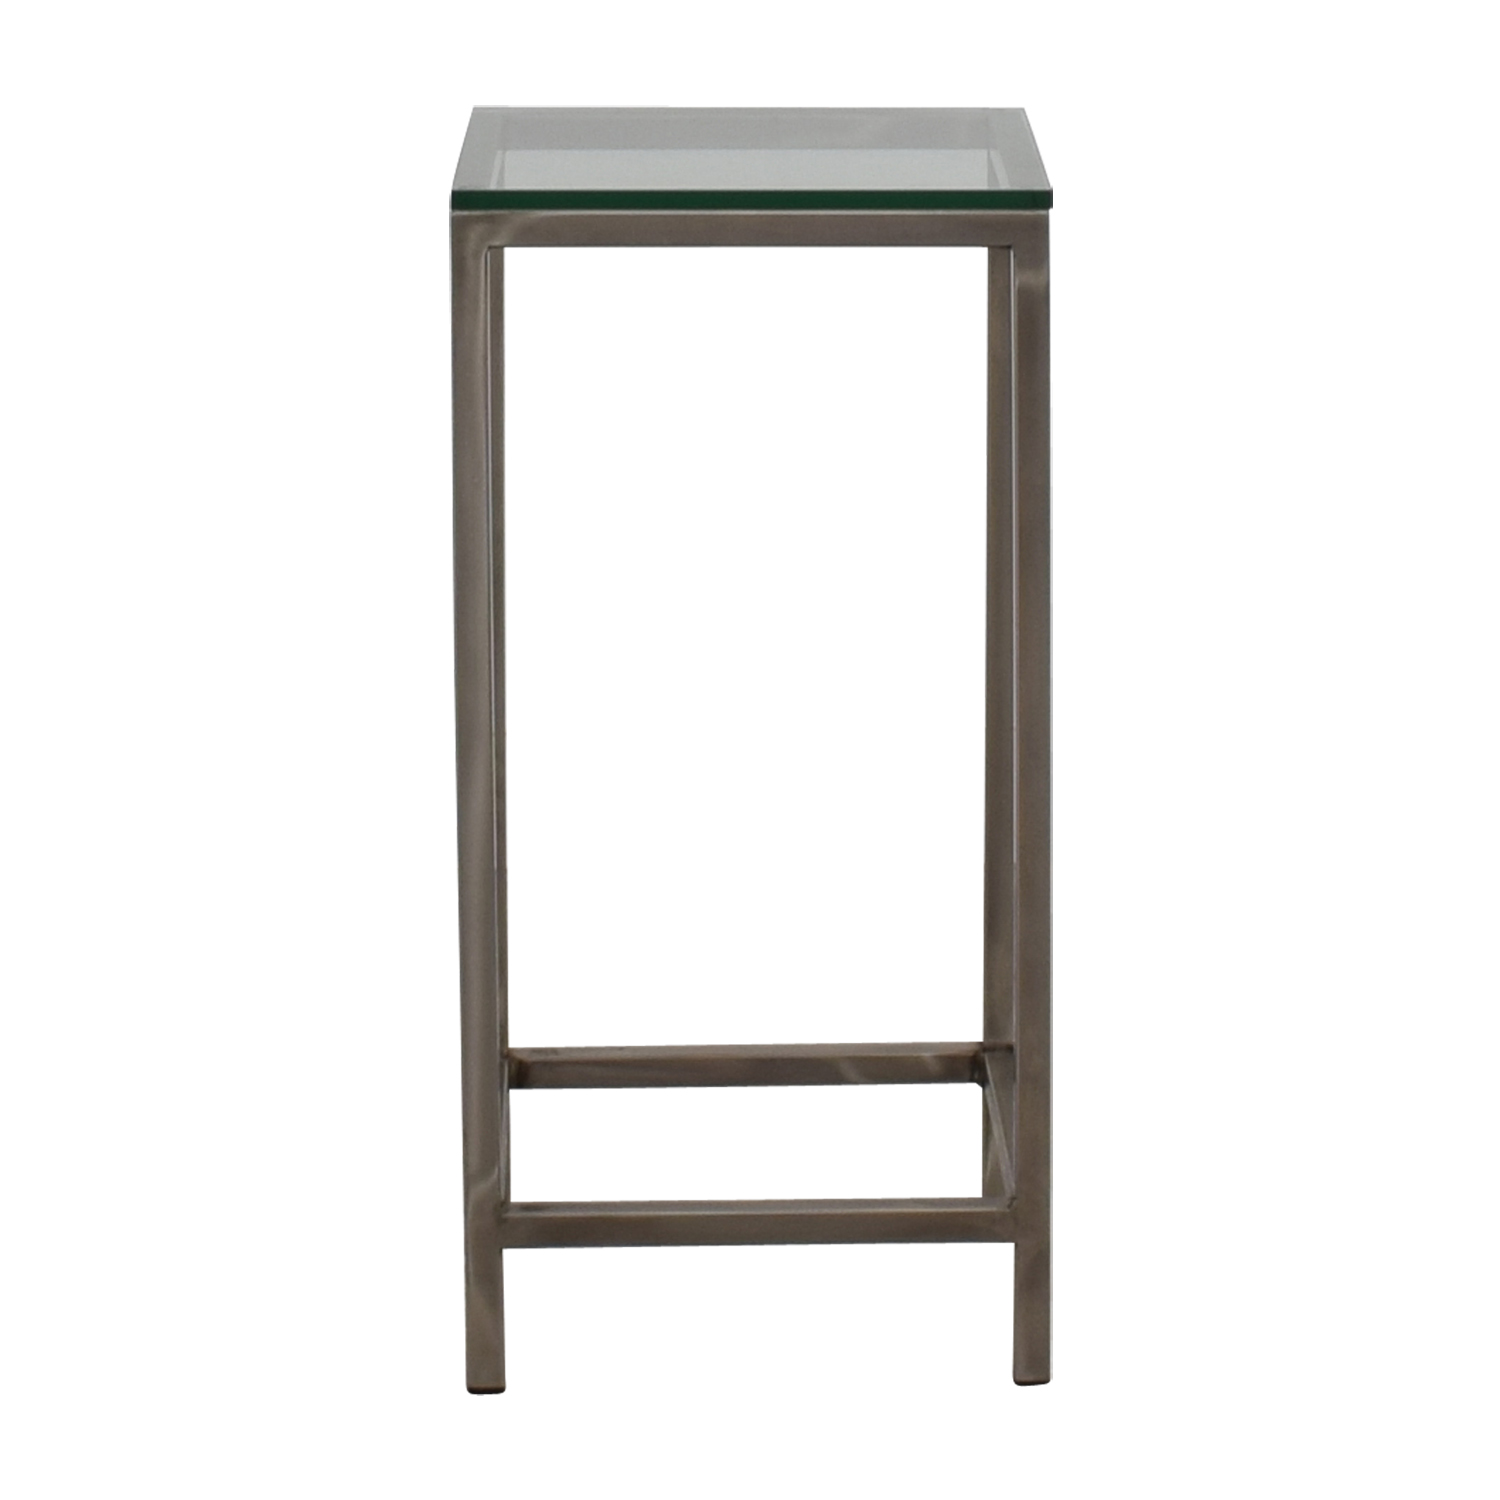 shop Crate & Barrel Crate & Barrel Era Square Glass Top Side Table online